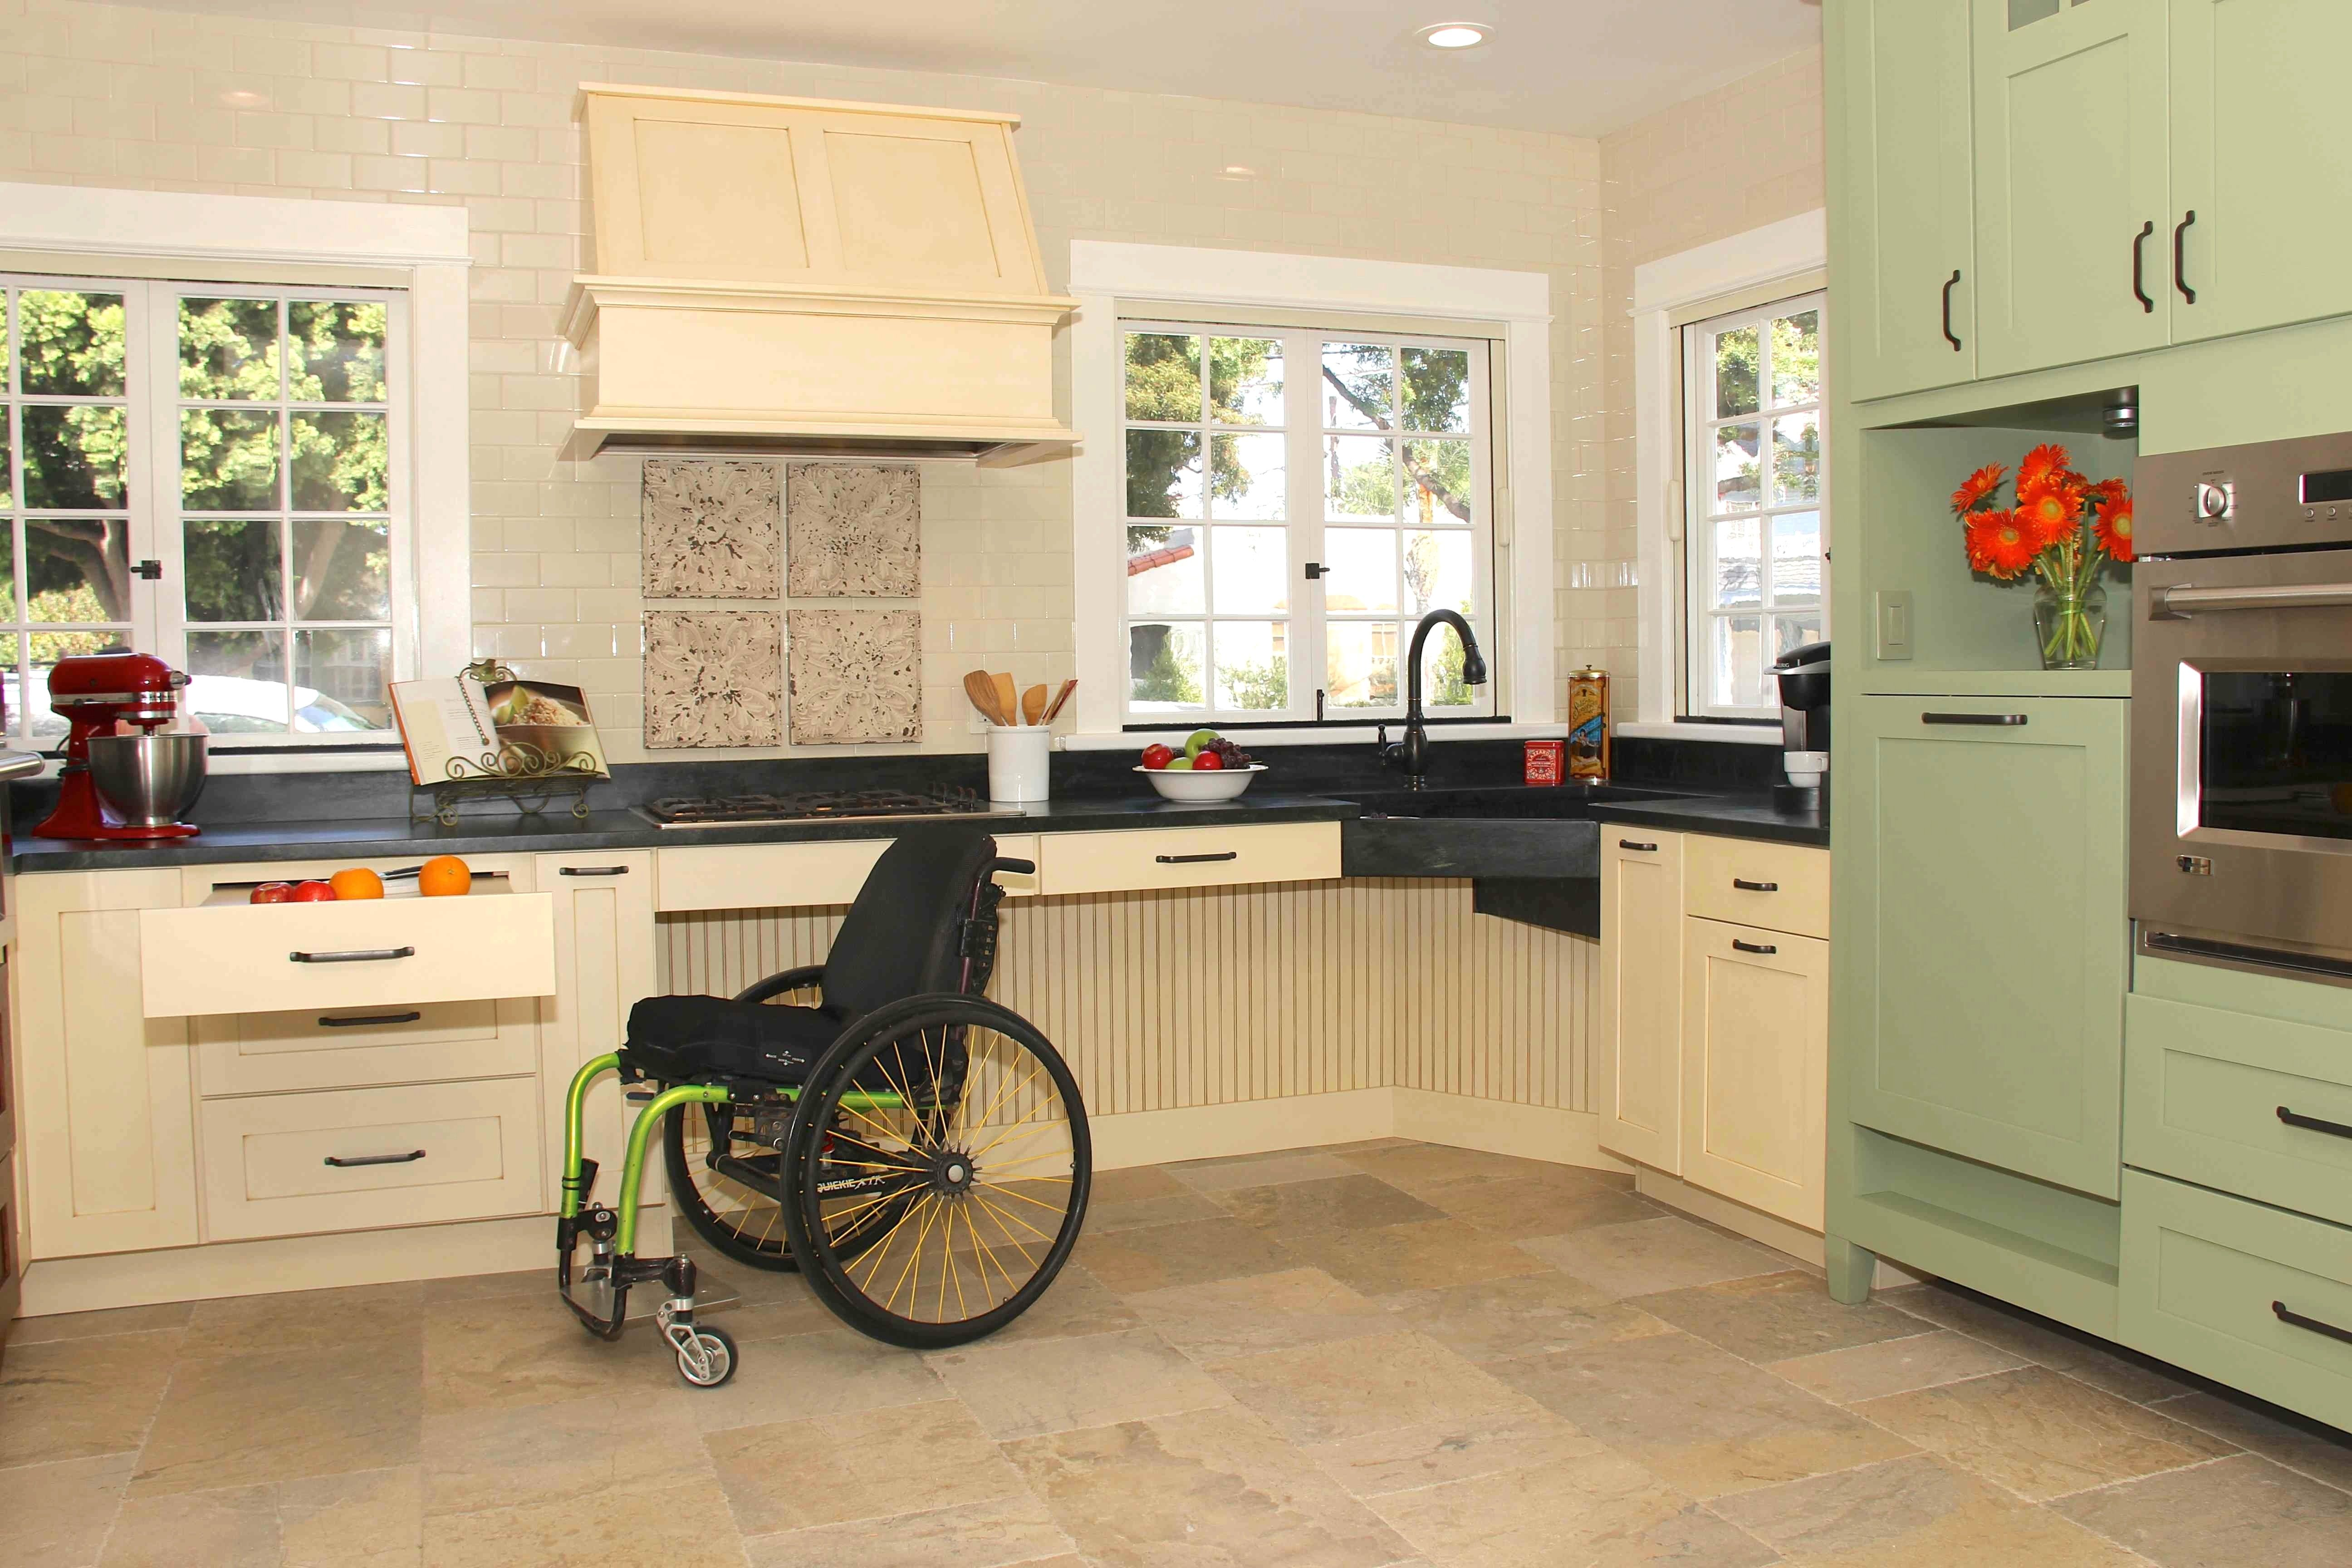 Attirant Accessible Kitchen Design: 7 Important Features For The Perfect Accessible  Kitchen   Accessible Homes Advisor